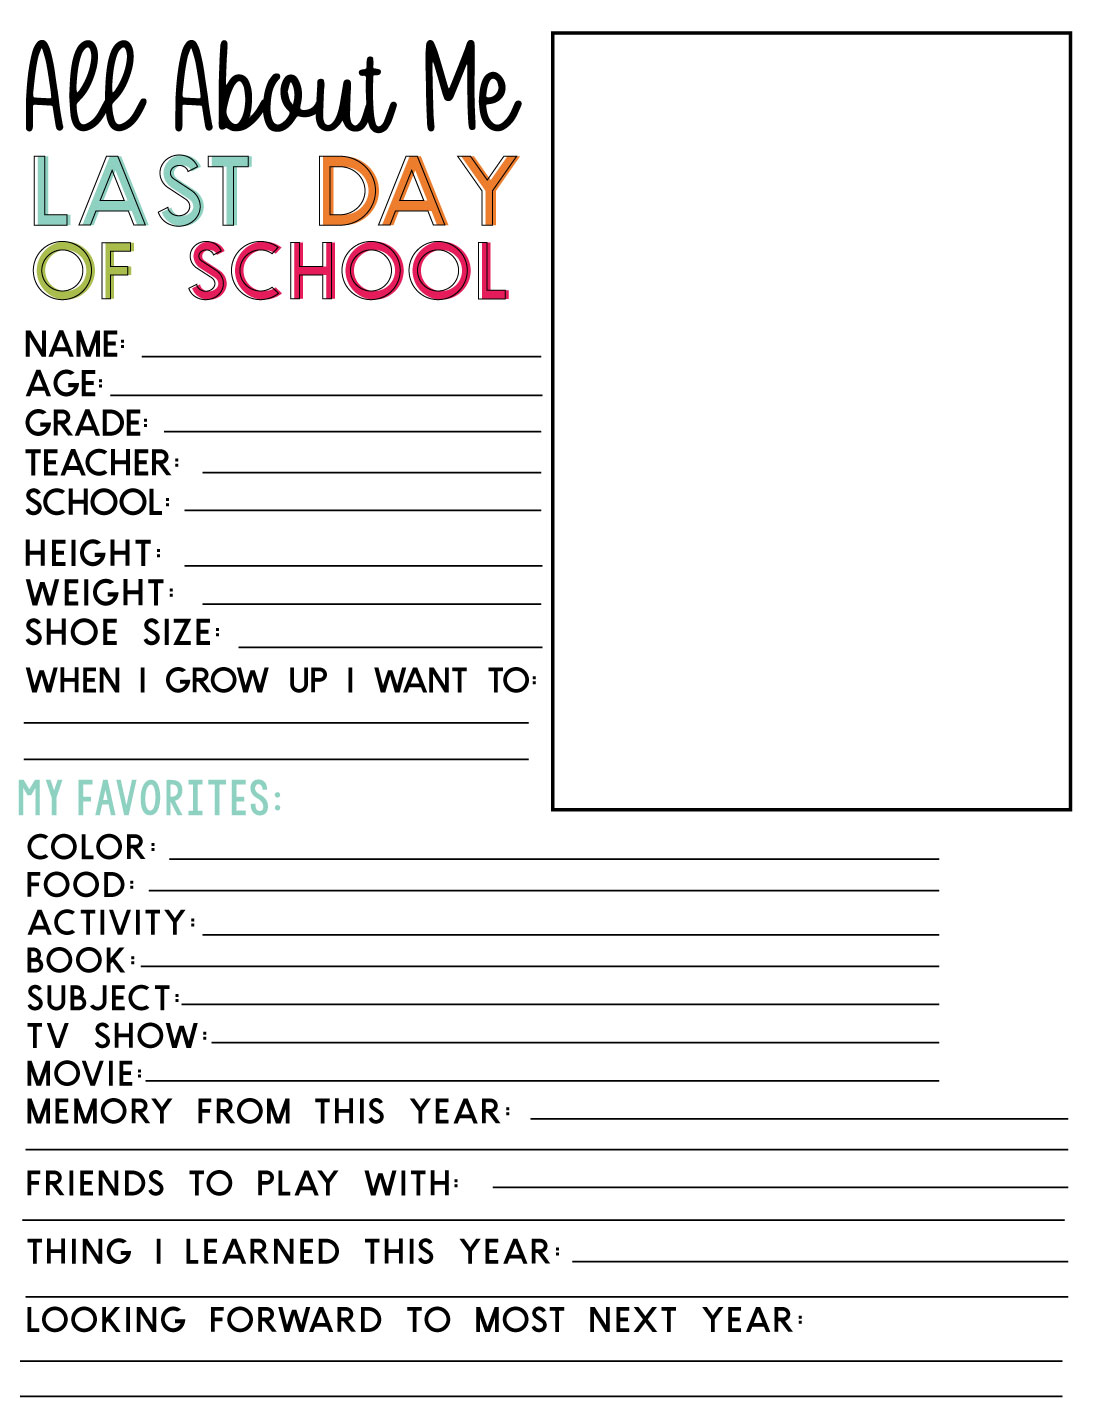 photograph about Last Day of School Printable identify Very last Working day of Faculty Printable